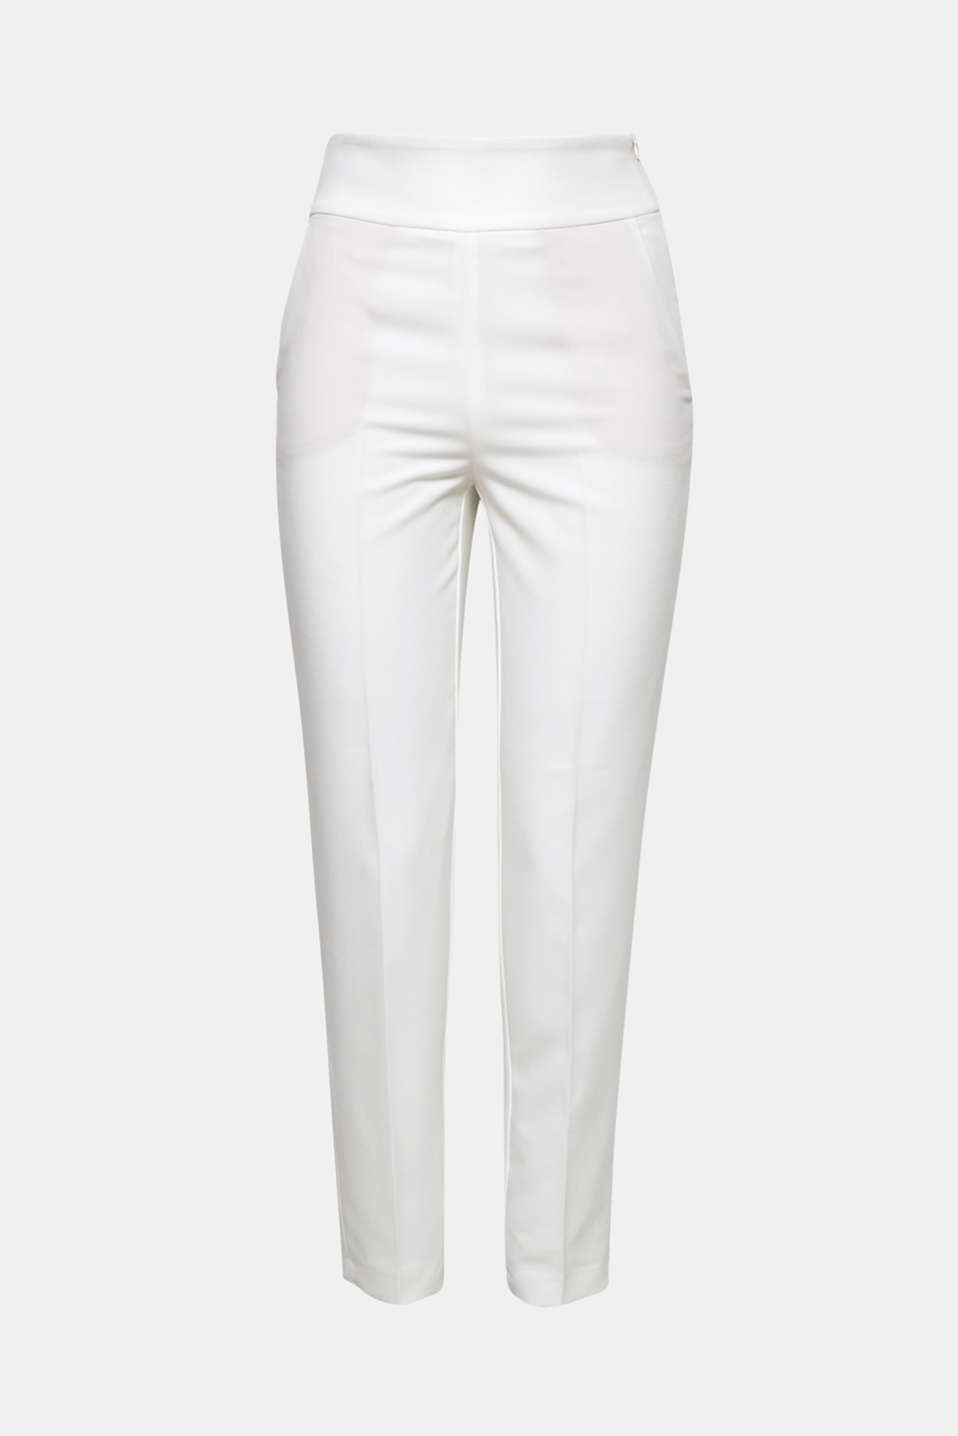 These high-waisted crêpe trousers with stretch are perfect for that special day and then for ever after as an elegant piece!